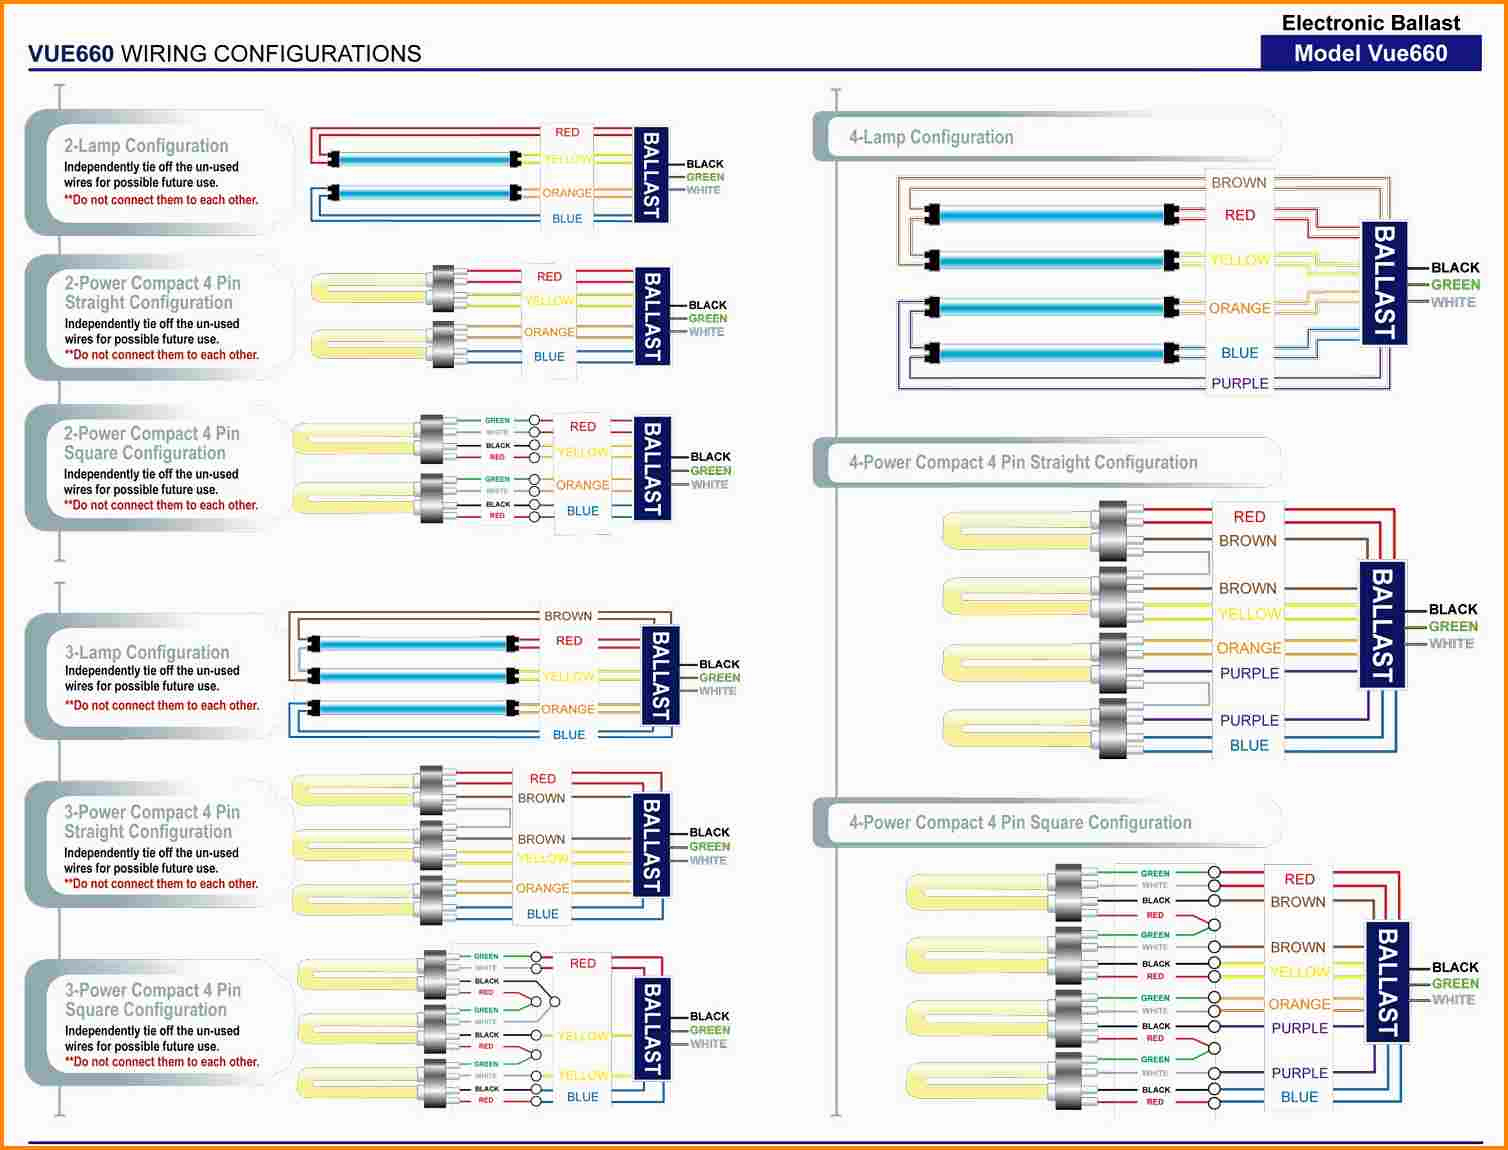 4 lamp t5 ballast wiring diagram Download-Sunpark Lighting Democraciaejustica 4 Lamp 2 Ballast Wiring Diagram Download 16-k